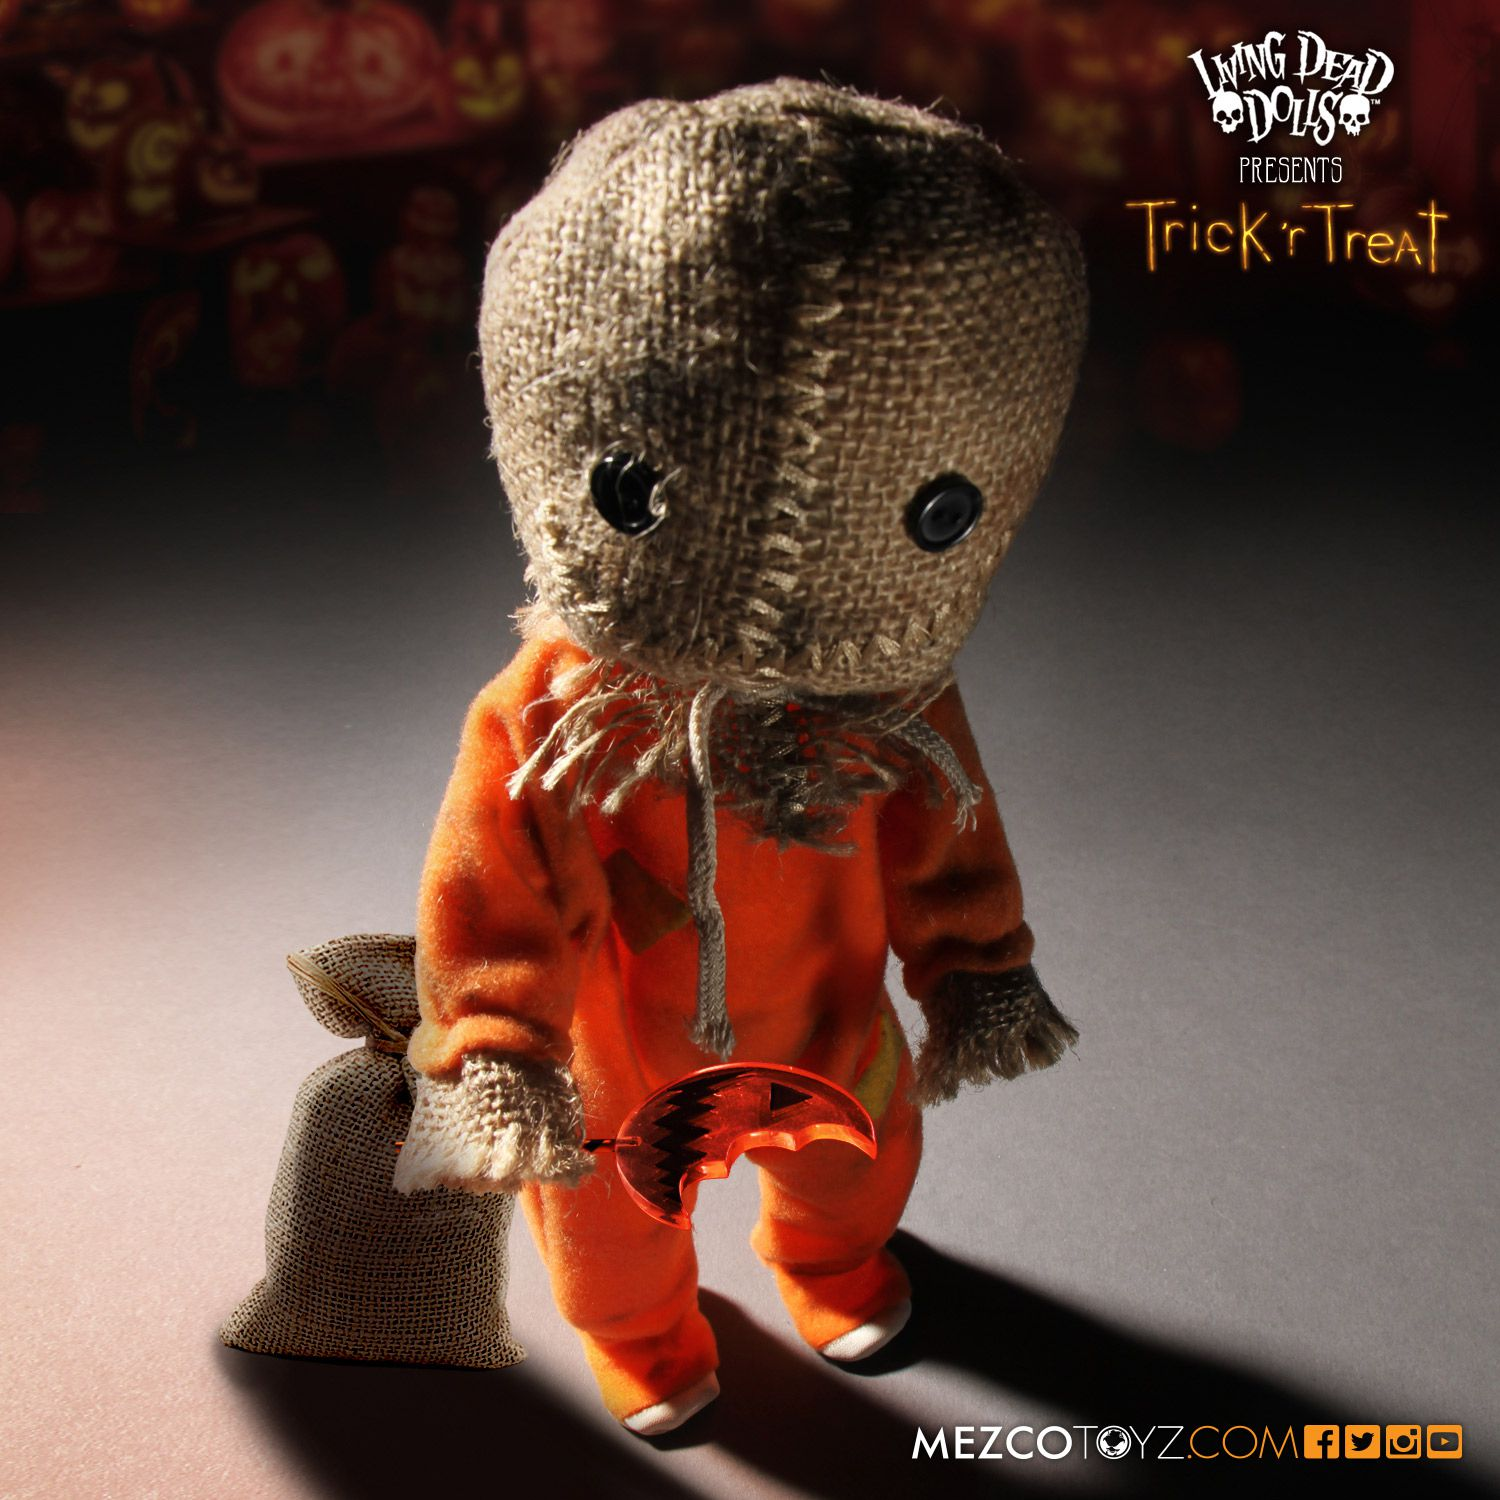 Mezco - Trick 'r Treat Sam Living Dead Dolls 03